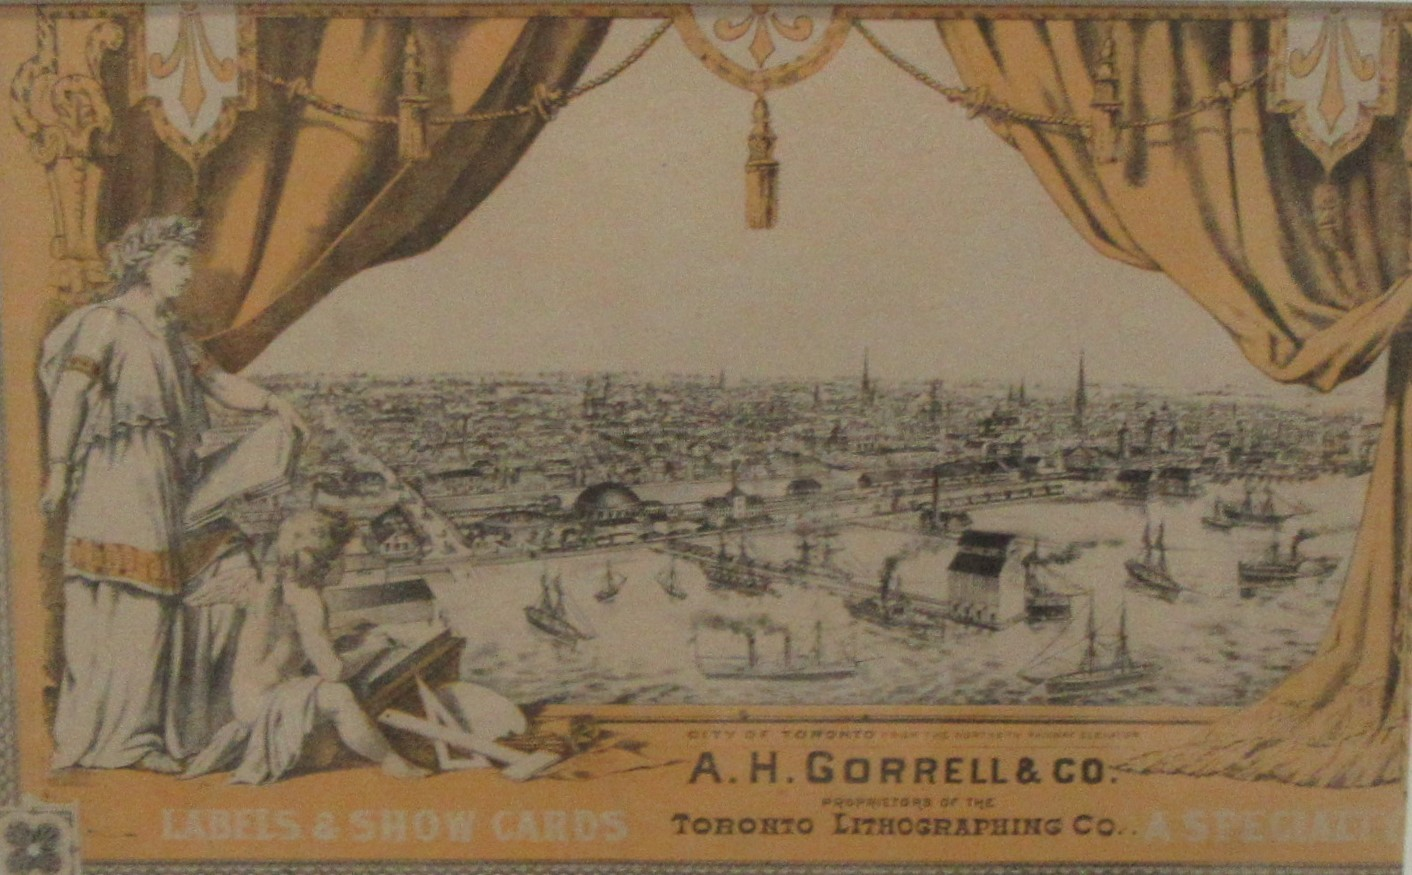 A.H.GORRELL & CO., PROPRIETORS OF TORONTO LITHOGRAPHING CO. City Of Toronto From The Northern Railway Elevator. lithograph